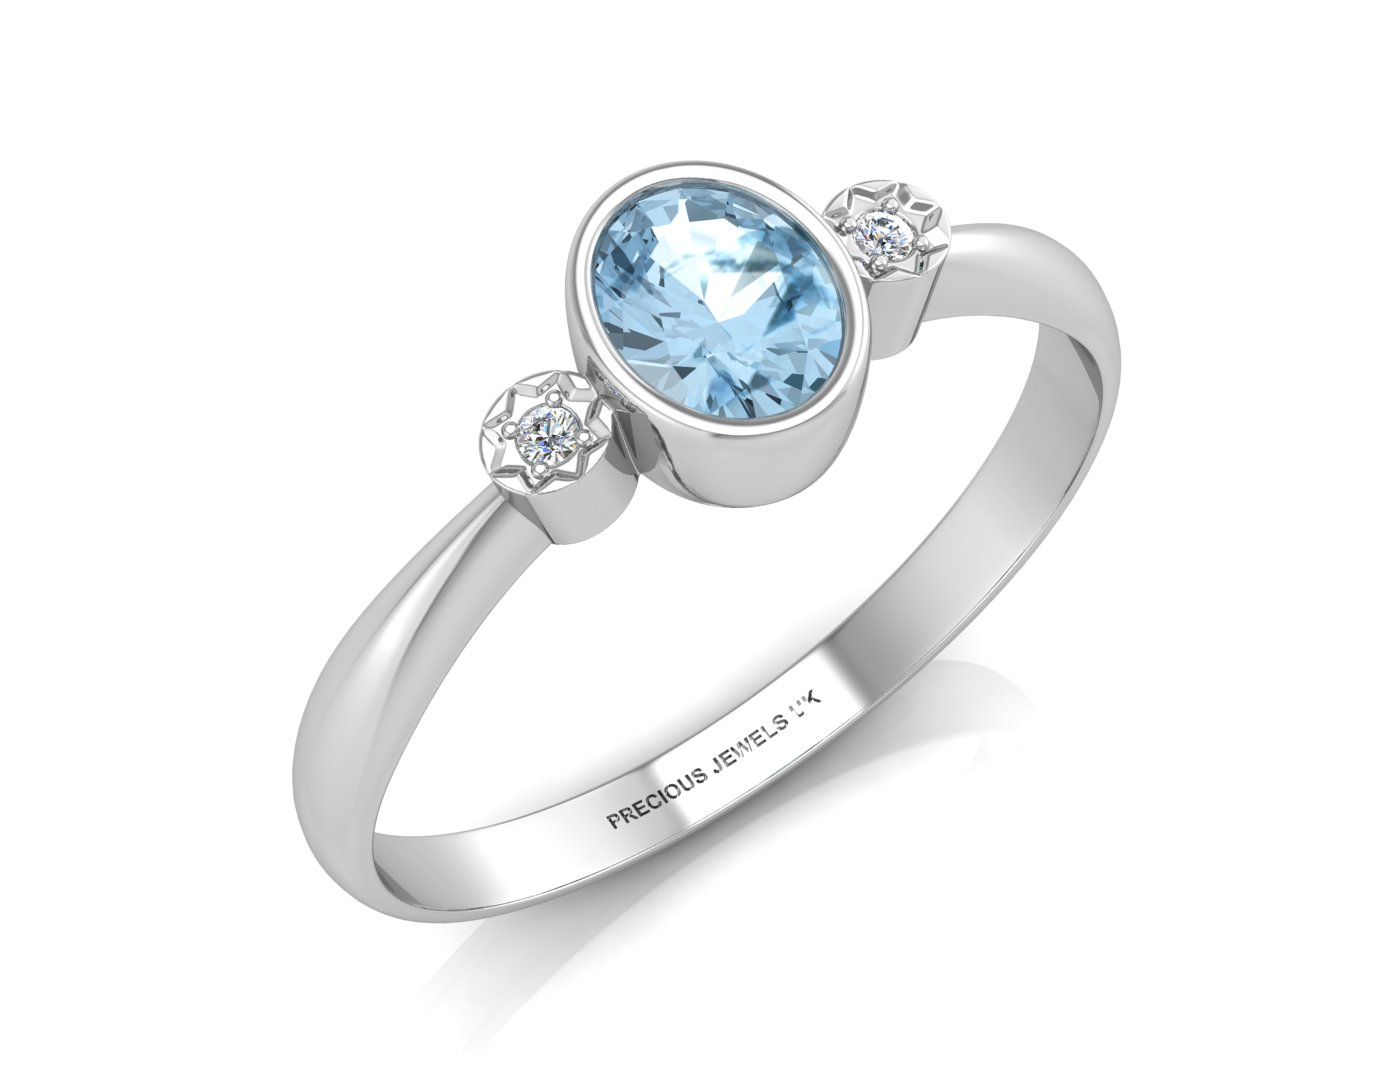 9ct White Gold Shoulder Set Diamond And Blue Topaz Ring